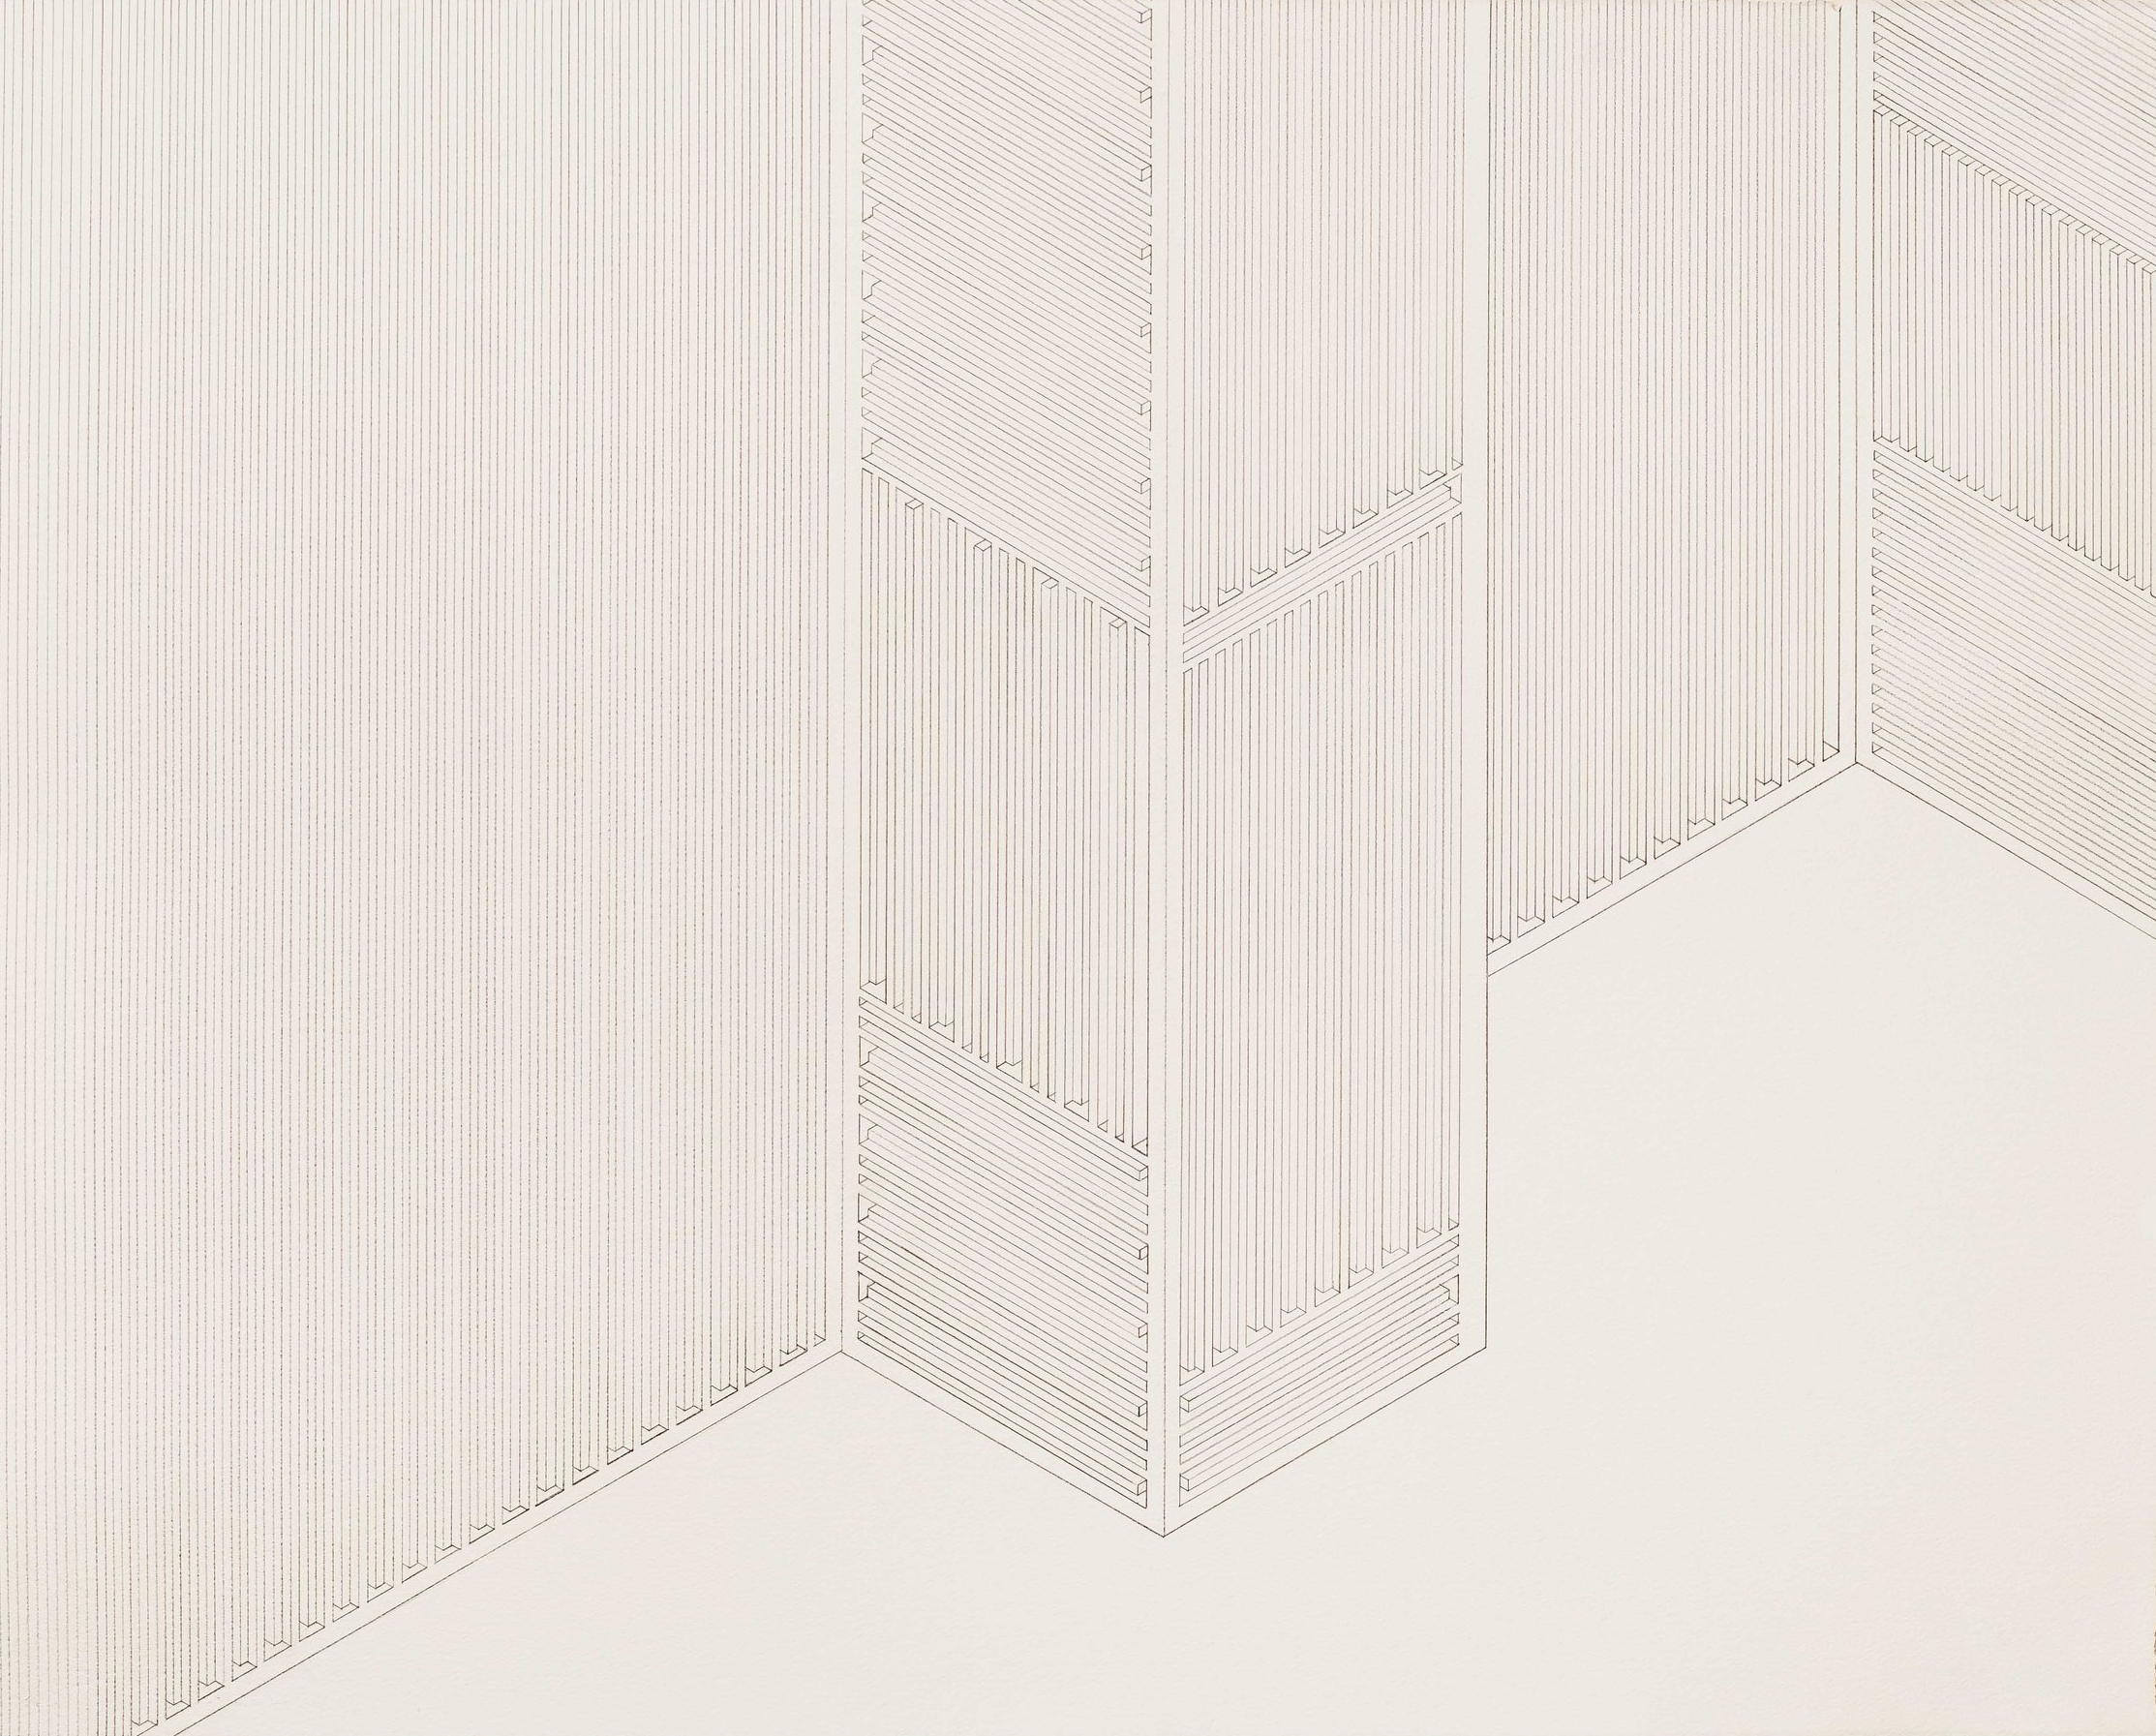 Structure 1, 2013  graphite on watercolor paper  22.5 x 28 inches